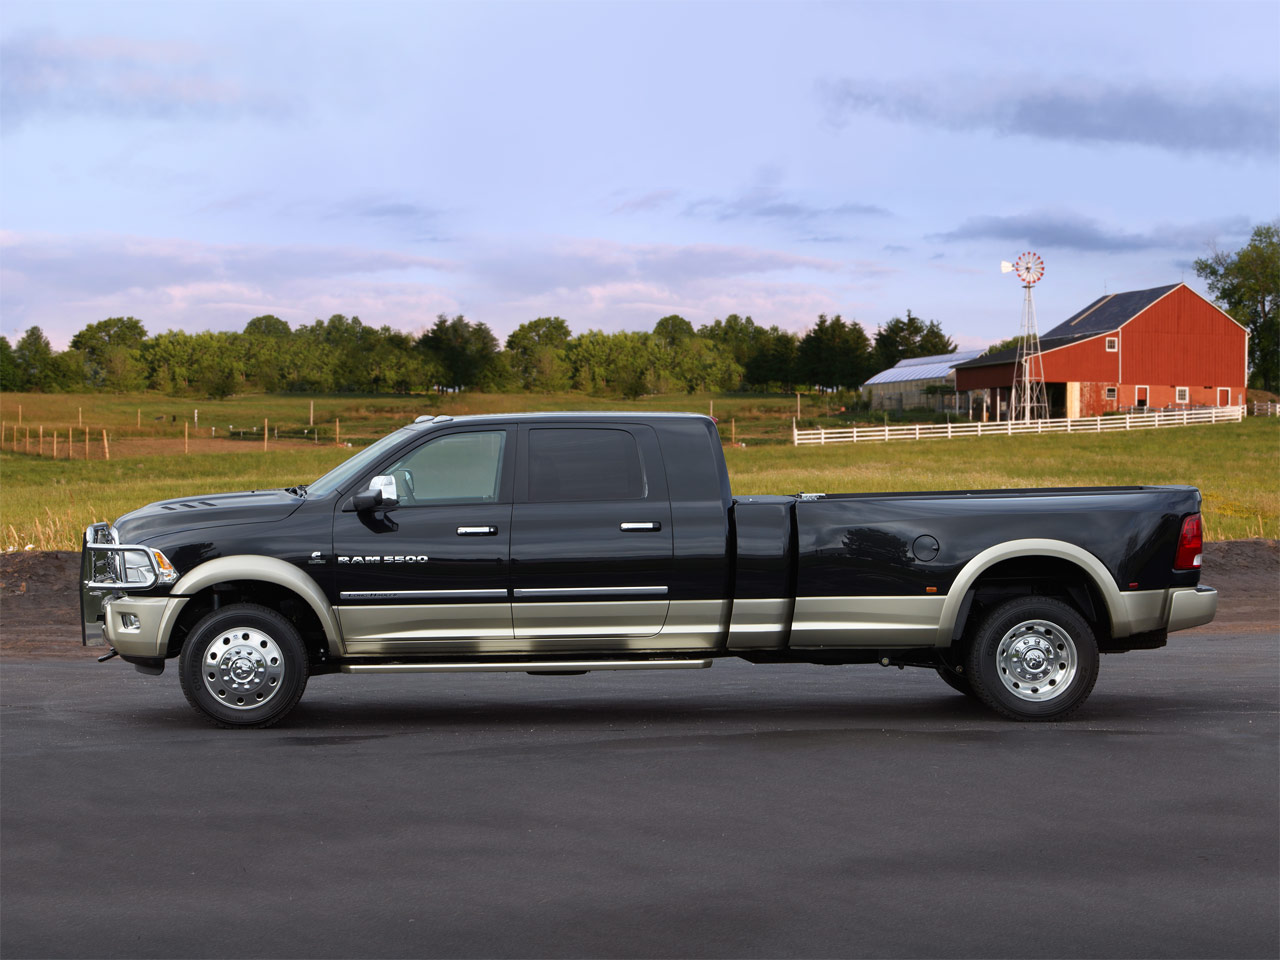 2013 mega cab long bed - DODGE RAM FORUM - Ram Forums and Owners Club